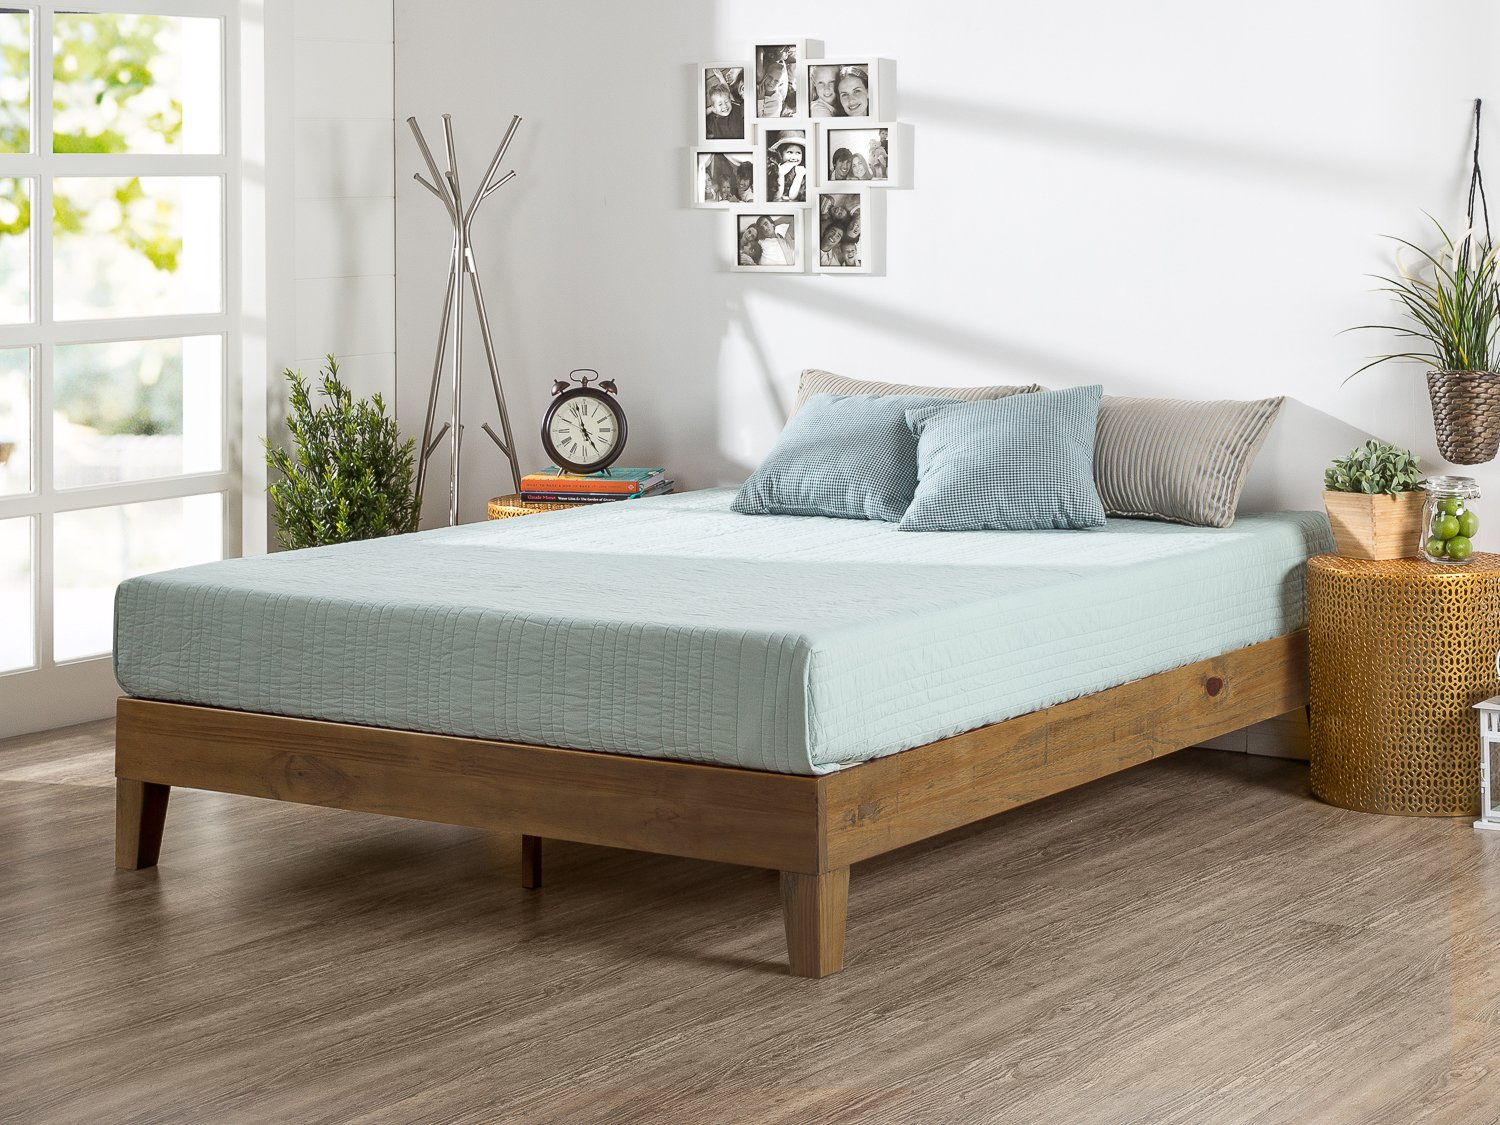 Zinus 12 Inch Deluxe Wood Platform Bed / No Boxspring Needed / Wood Slat Support / Rustic Pine Finish, Full